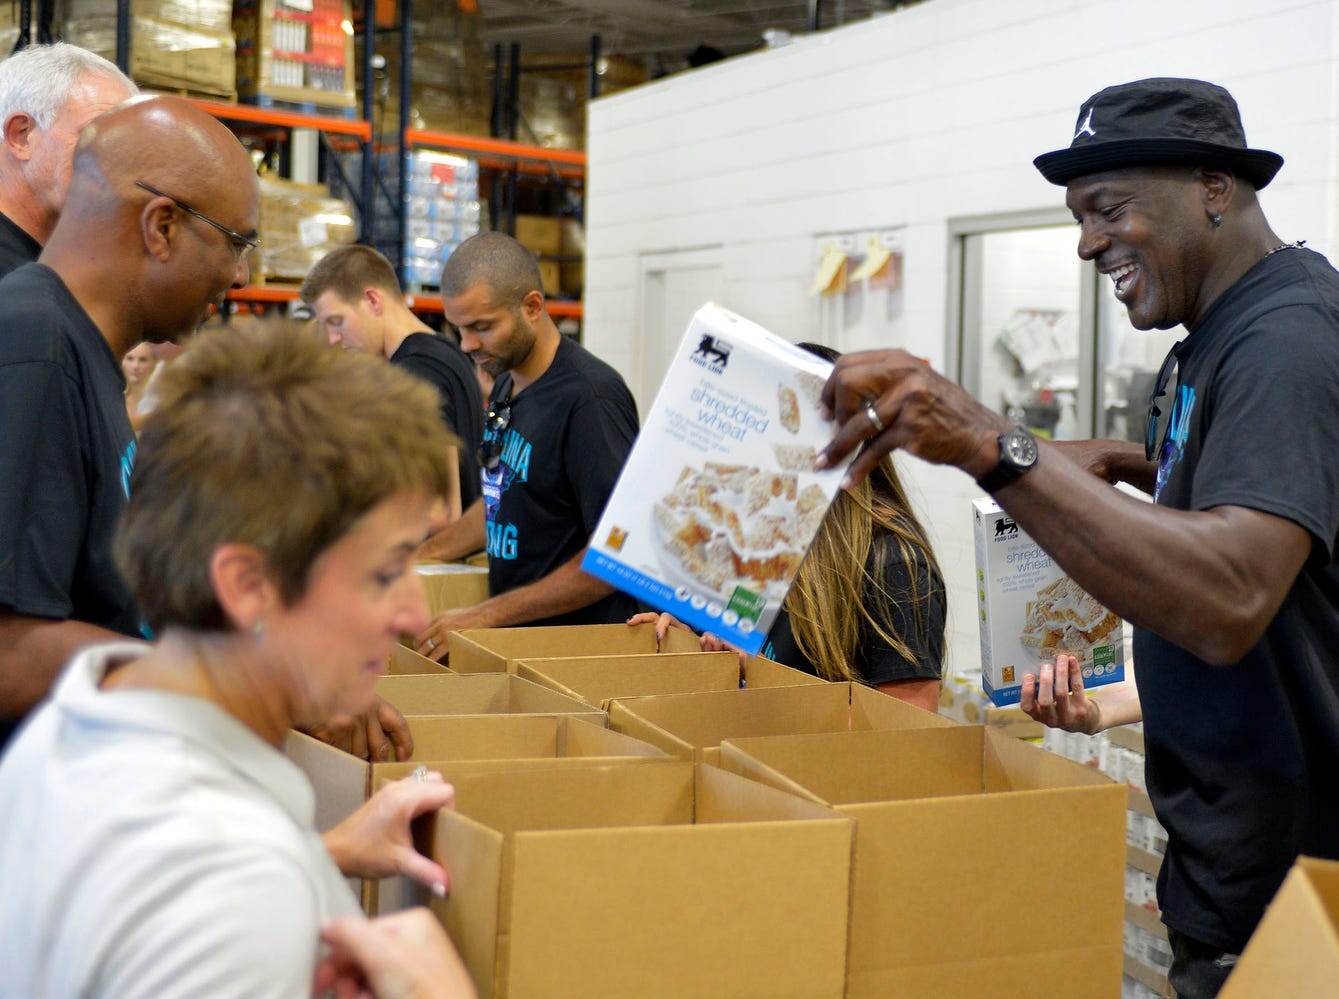 Charlotte Hornets owner Michael Jordan, right, loads boxes with goods for Hurricane Florence victims as he makes an appearance Friday, Sept. 21, 2018, at Second Harvest Food Bank of Metrolina in Charlotte, N.C. The Hornets NBA basketball team packed food boxes as part of hurricane relief efforts.